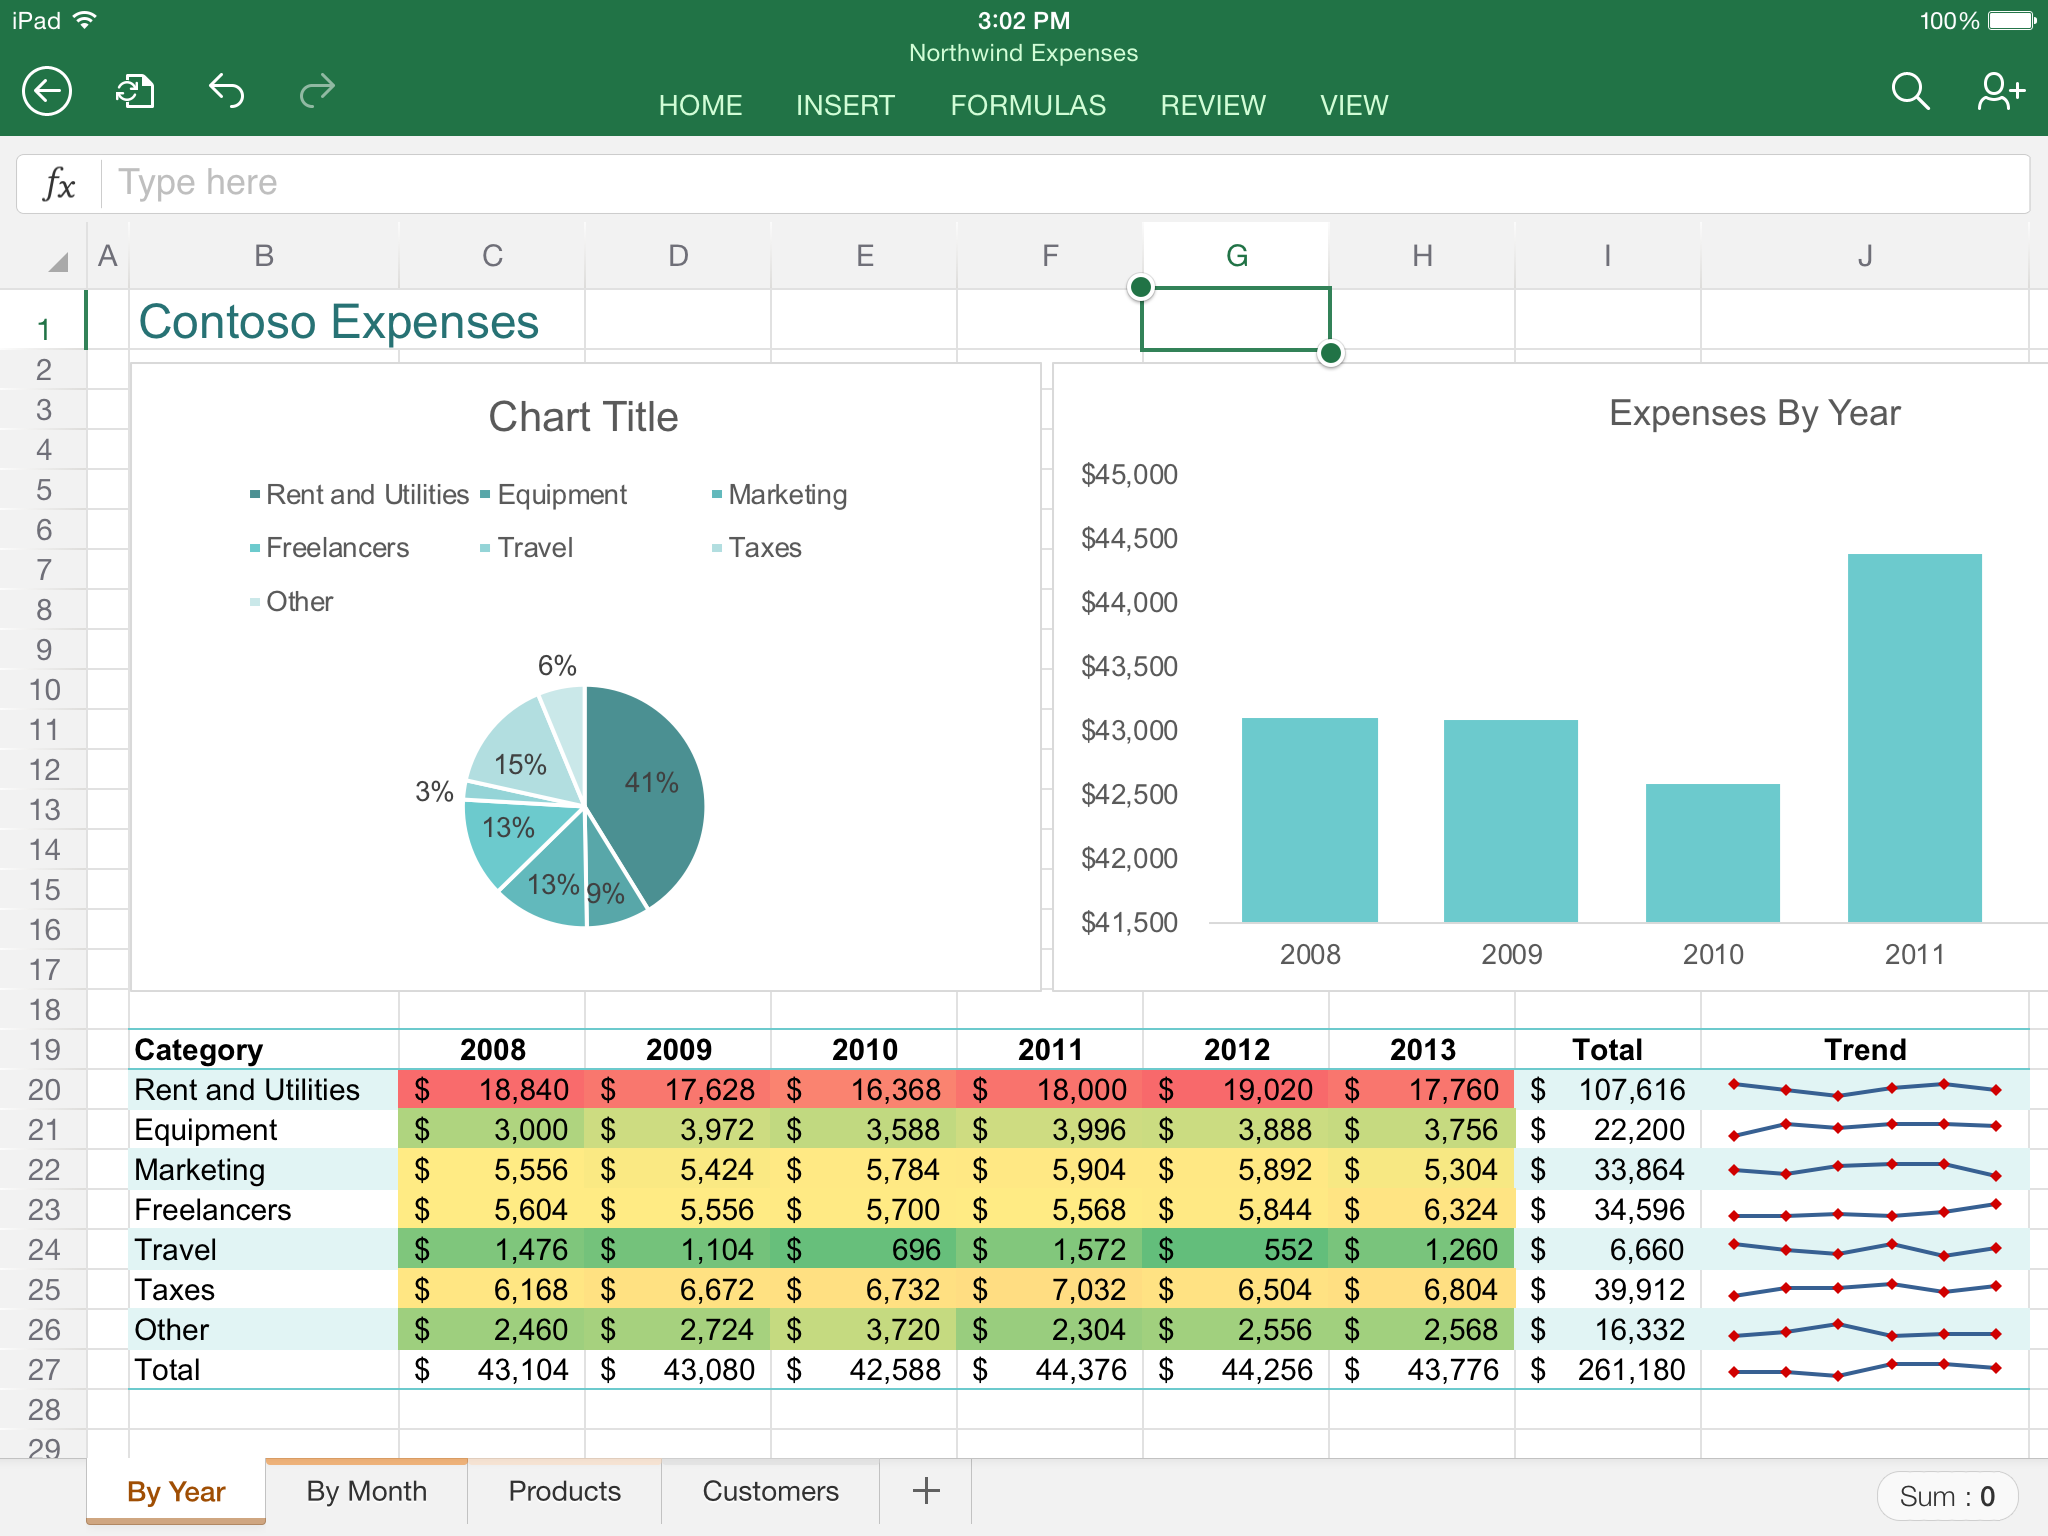 Ediblewildsus  Ravishing App Highlight Excel  Mobile Digital Now With Exciting Excel In Action With Endearing Project Cash Flow Statement Format In Excel Also What Is Formula Bar In Ms Excel In Addition Spell No In Excel And Protect Cell In Excel As Well As Excel Convert Number To Time Additionally Rows Excel Vba From Youstonybrookedu With Ediblewildsus  Exciting App Highlight Excel  Mobile Digital Now With Endearing Excel In Action And Ravishing Project Cash Flow Statement Format In Excel Also What Is Formula Bar In Ms Excel In Addition Spell No In Excel From Youstonybrookedu